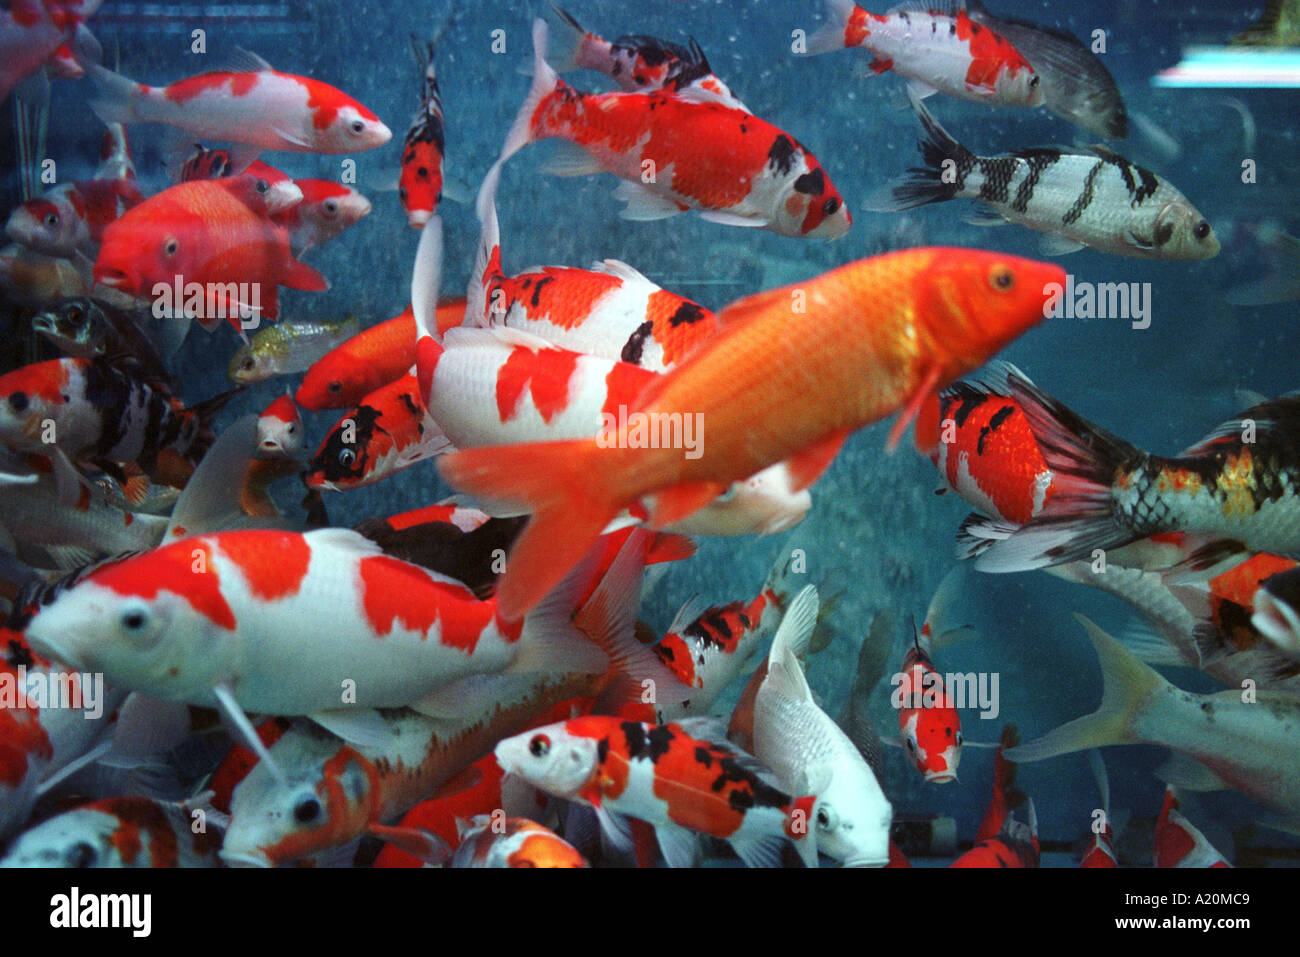 Koi Fish In Fish Tank Stock Photos & Koi Fish In Fish Tank Stock ...